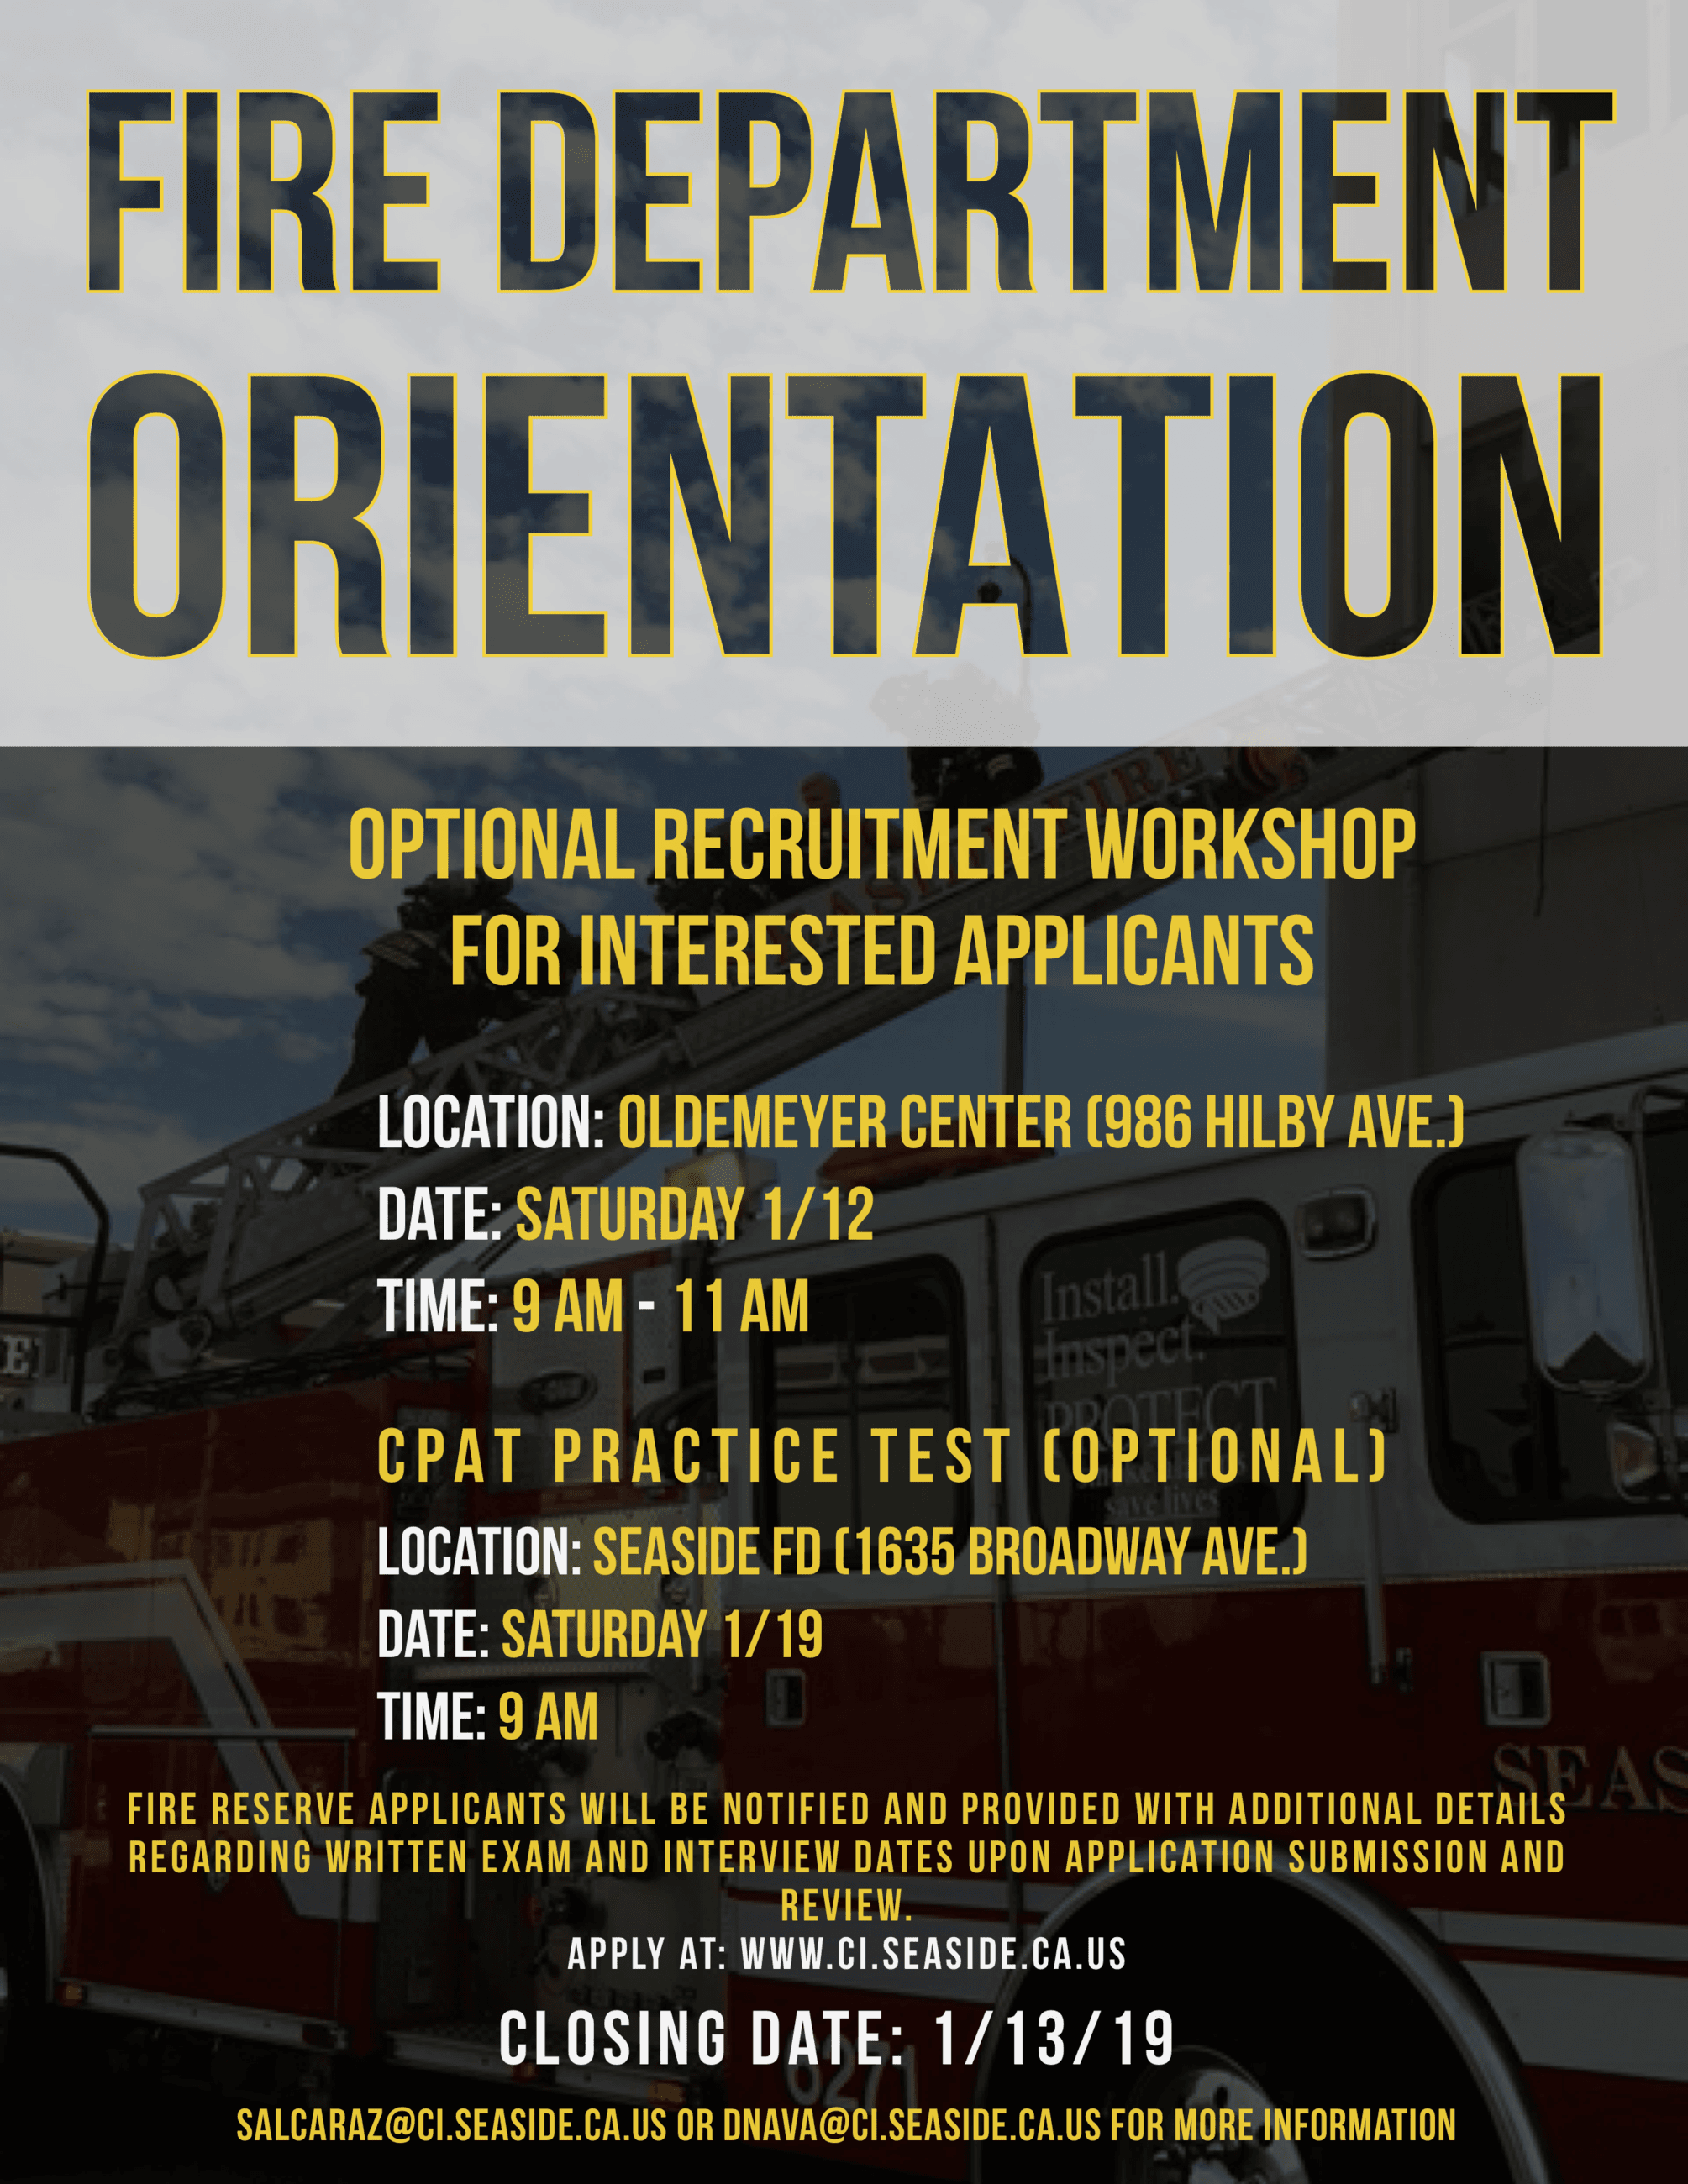 Reserve Firefighter Orientation Flyer with dates of workshop